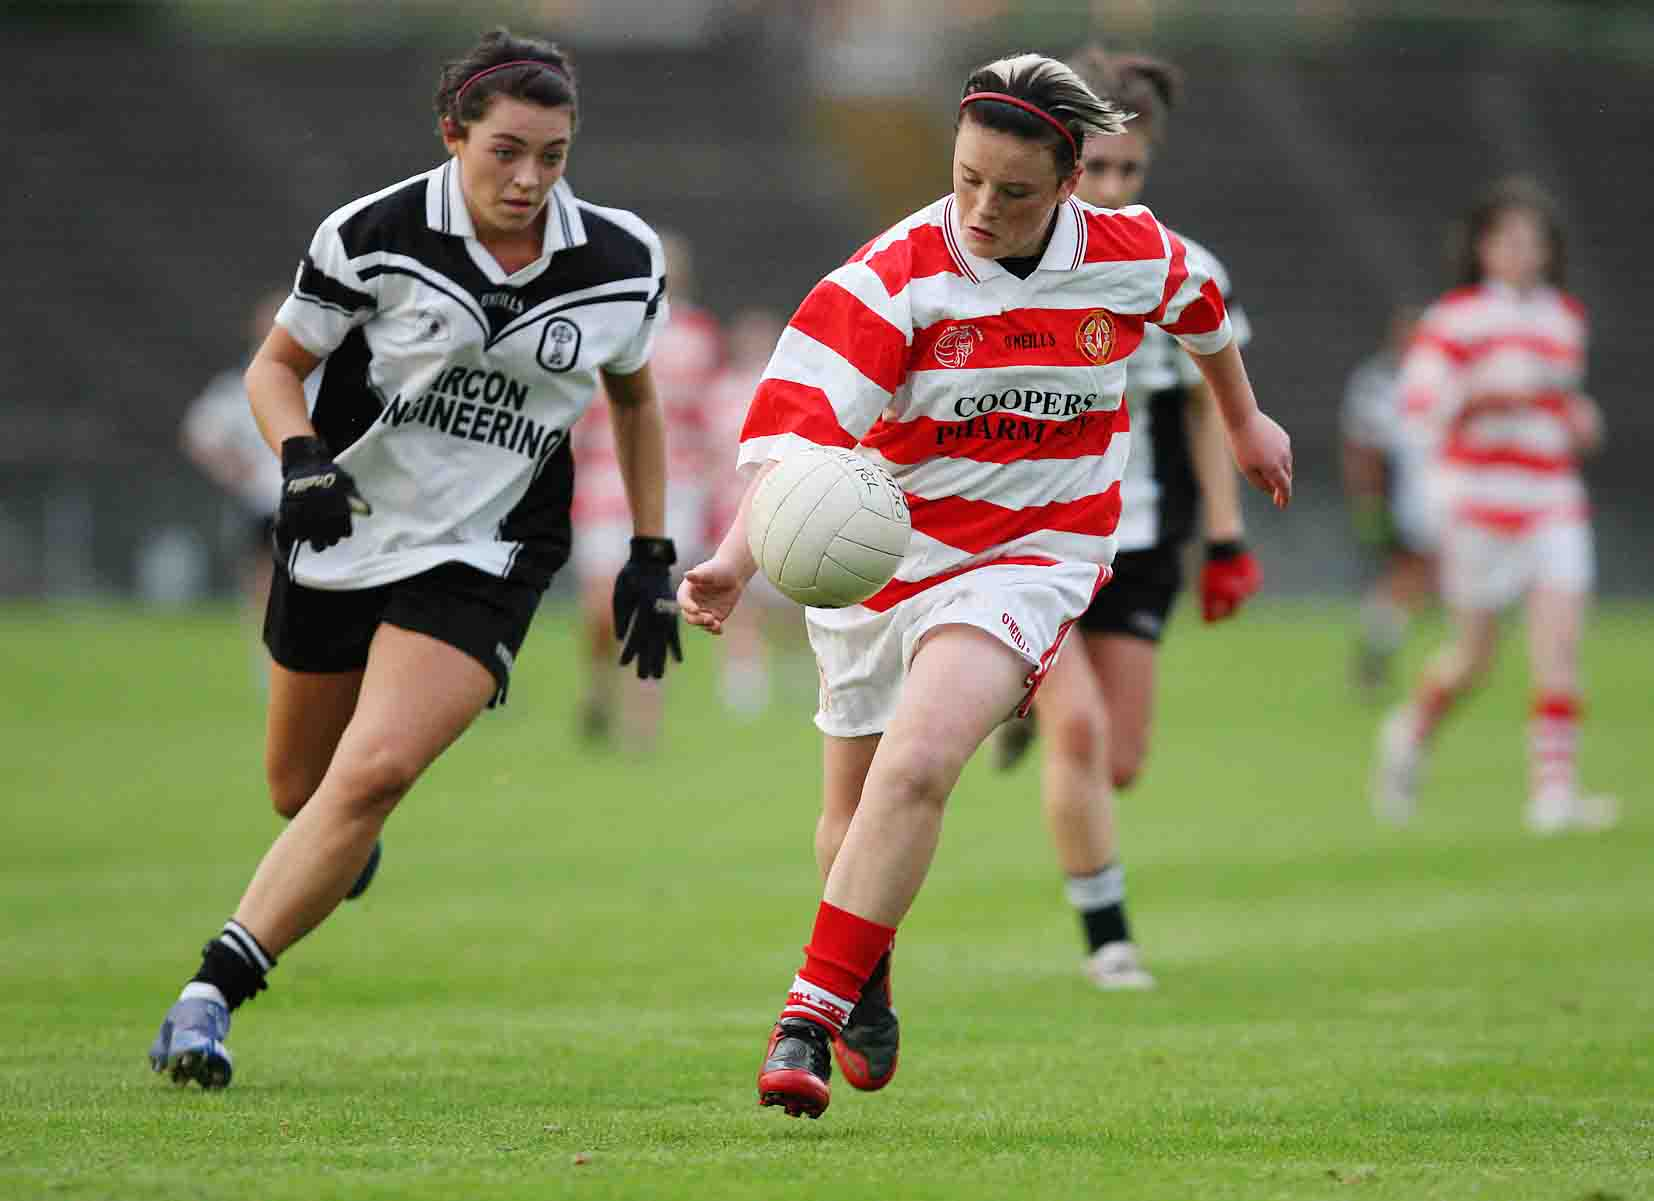 St Paul's Ursula Mc Cotter gets clear of All Saints Laura Mc Nicholl and goes for goal